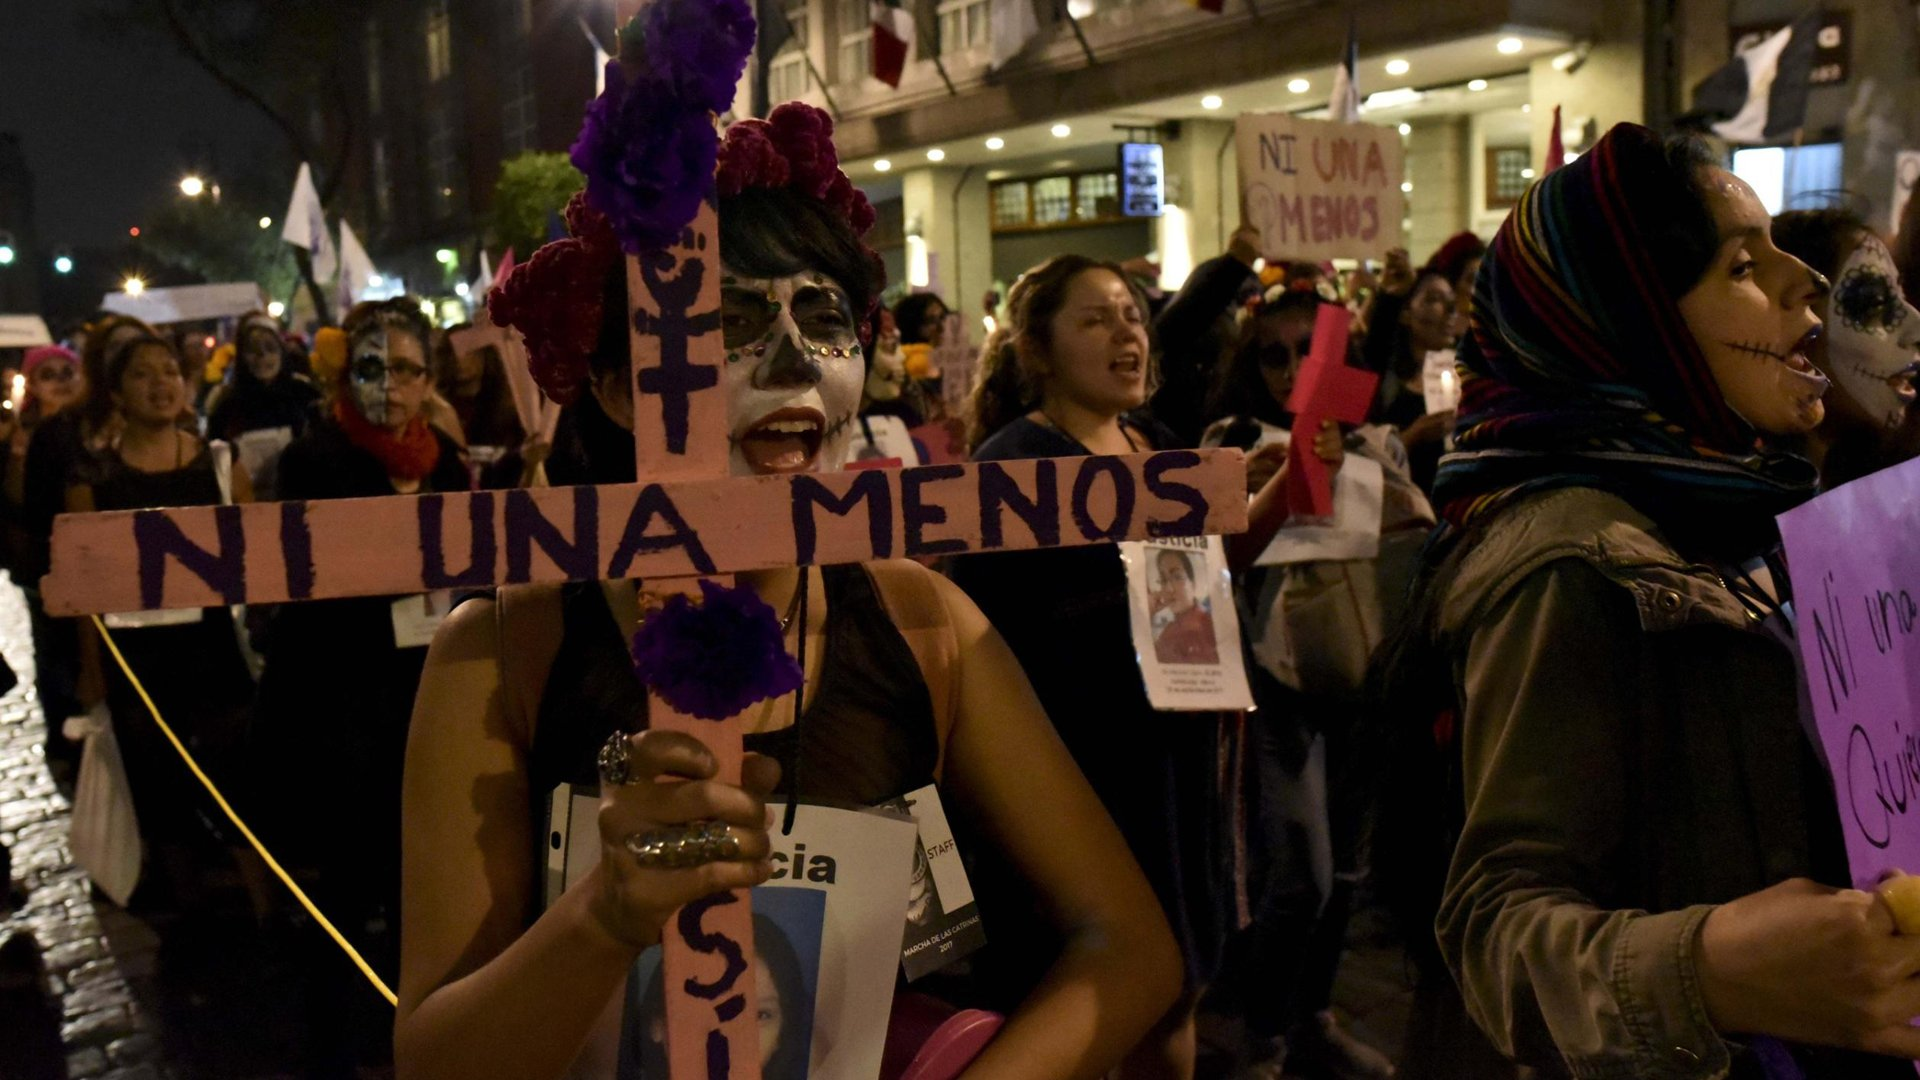 Seen is a previous protest over the rate of prosecutions over femicide in Mexico. (Credit: AFP Contributor/AFP/Getty Images)